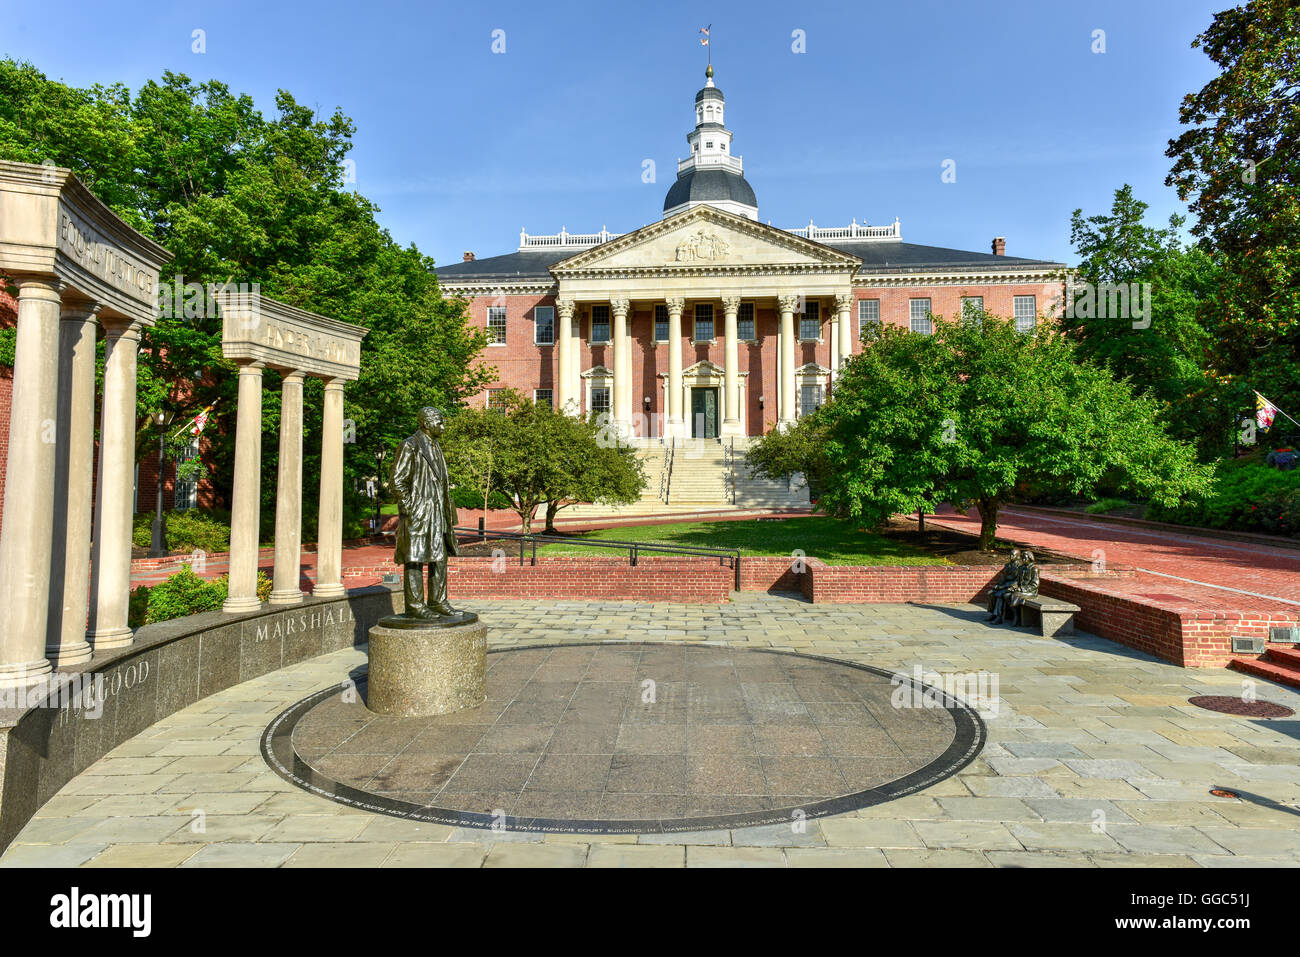 Thurgood Marshall Monument beside the Maryland State Capital building in Annapolis, Maryland on summer afternoon. - Stock Image